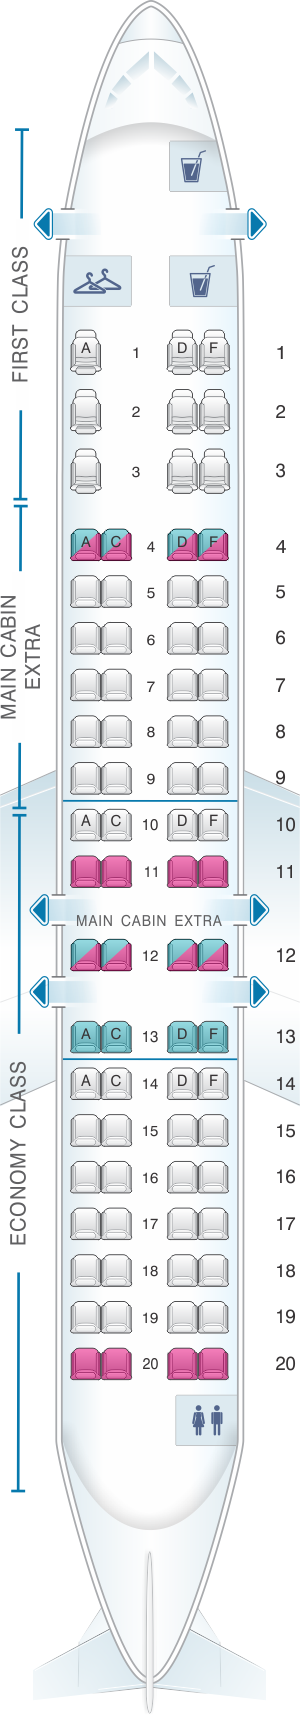 Seat map for American Airlines CRJ 900 V2